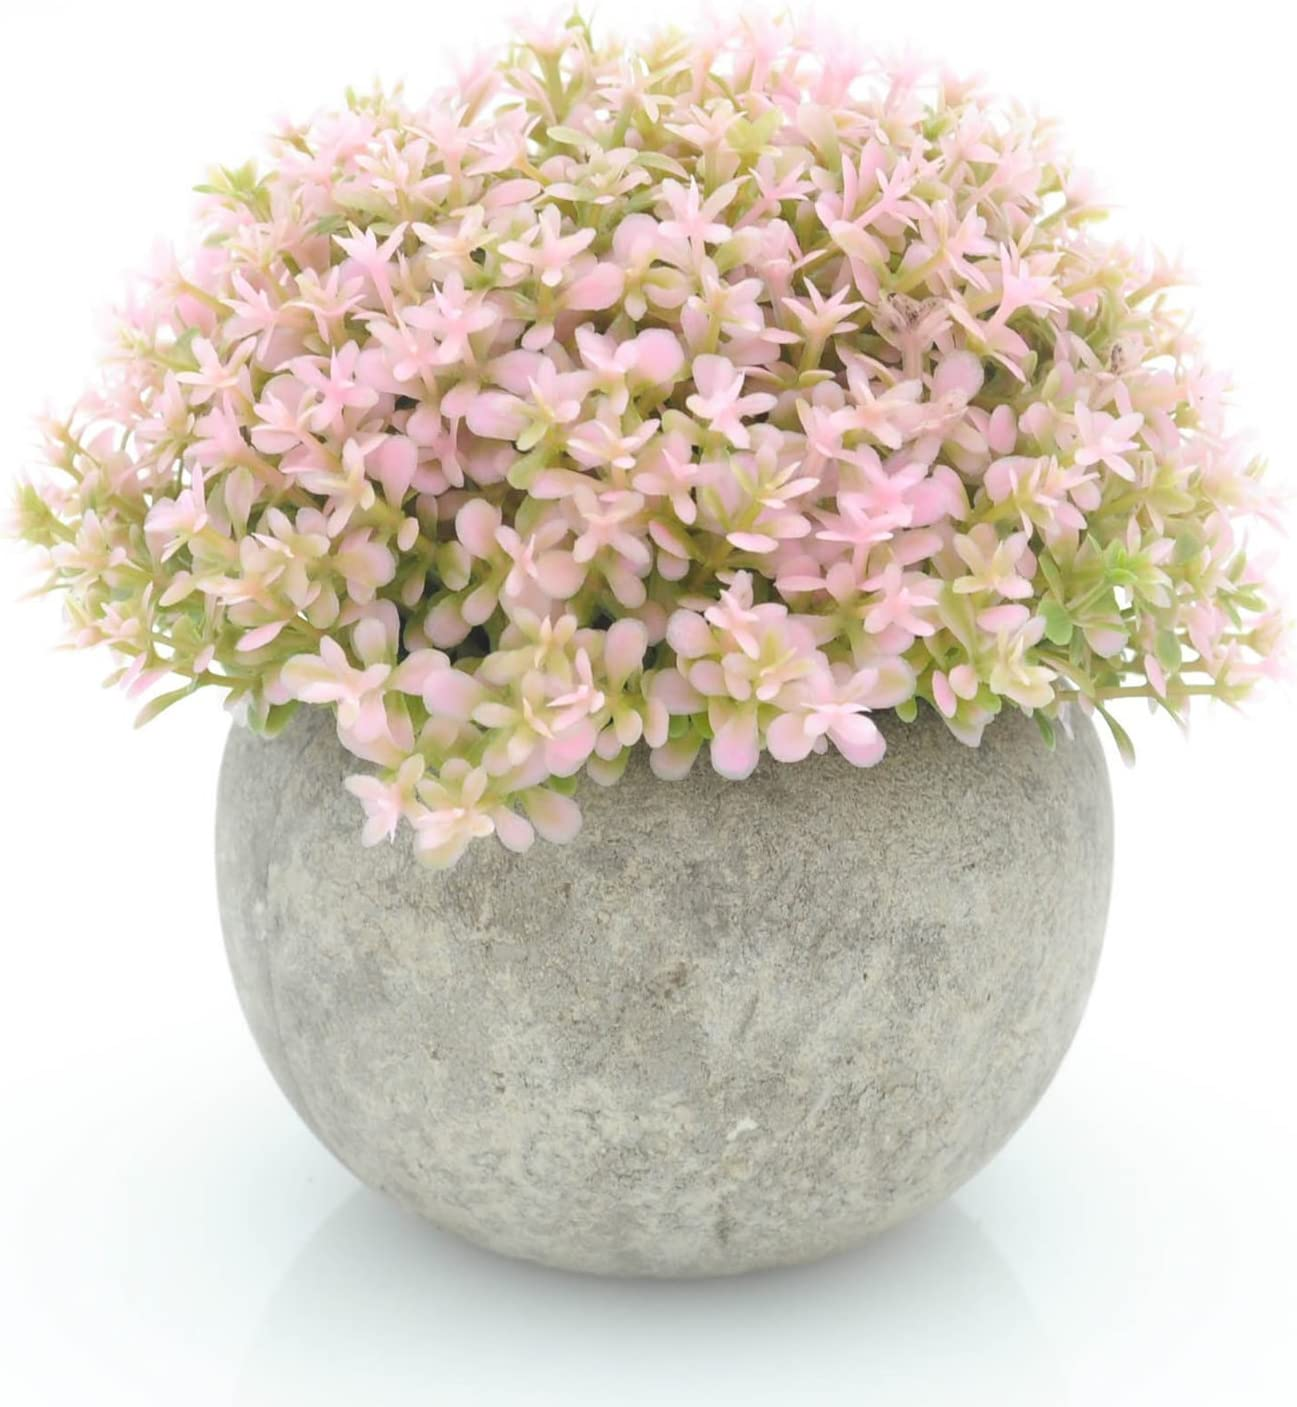 Velener Mini Plastic Artificial Pine Ball Topiary Plant with Pots for Home Decor (Pink Clover)